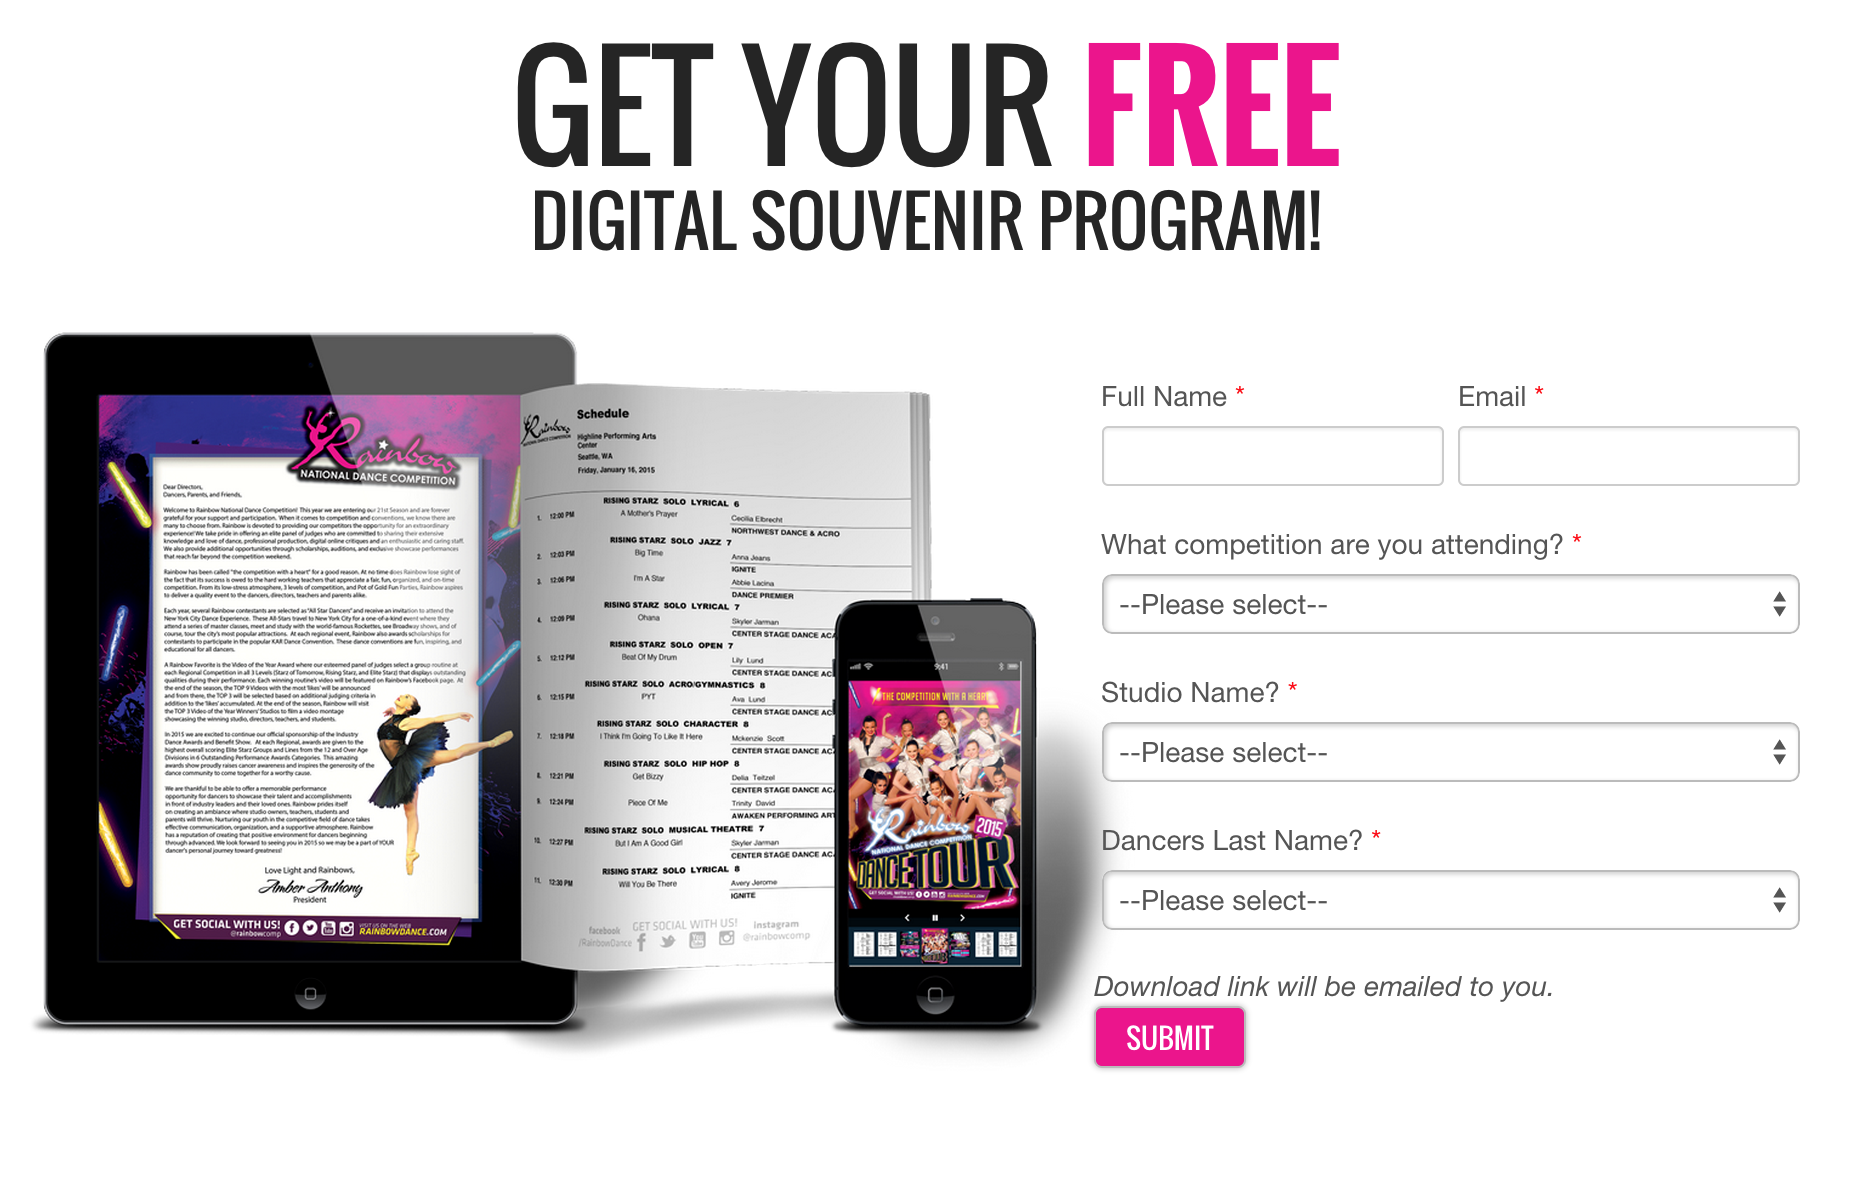 Get Your Free Digital Souvenir Program!